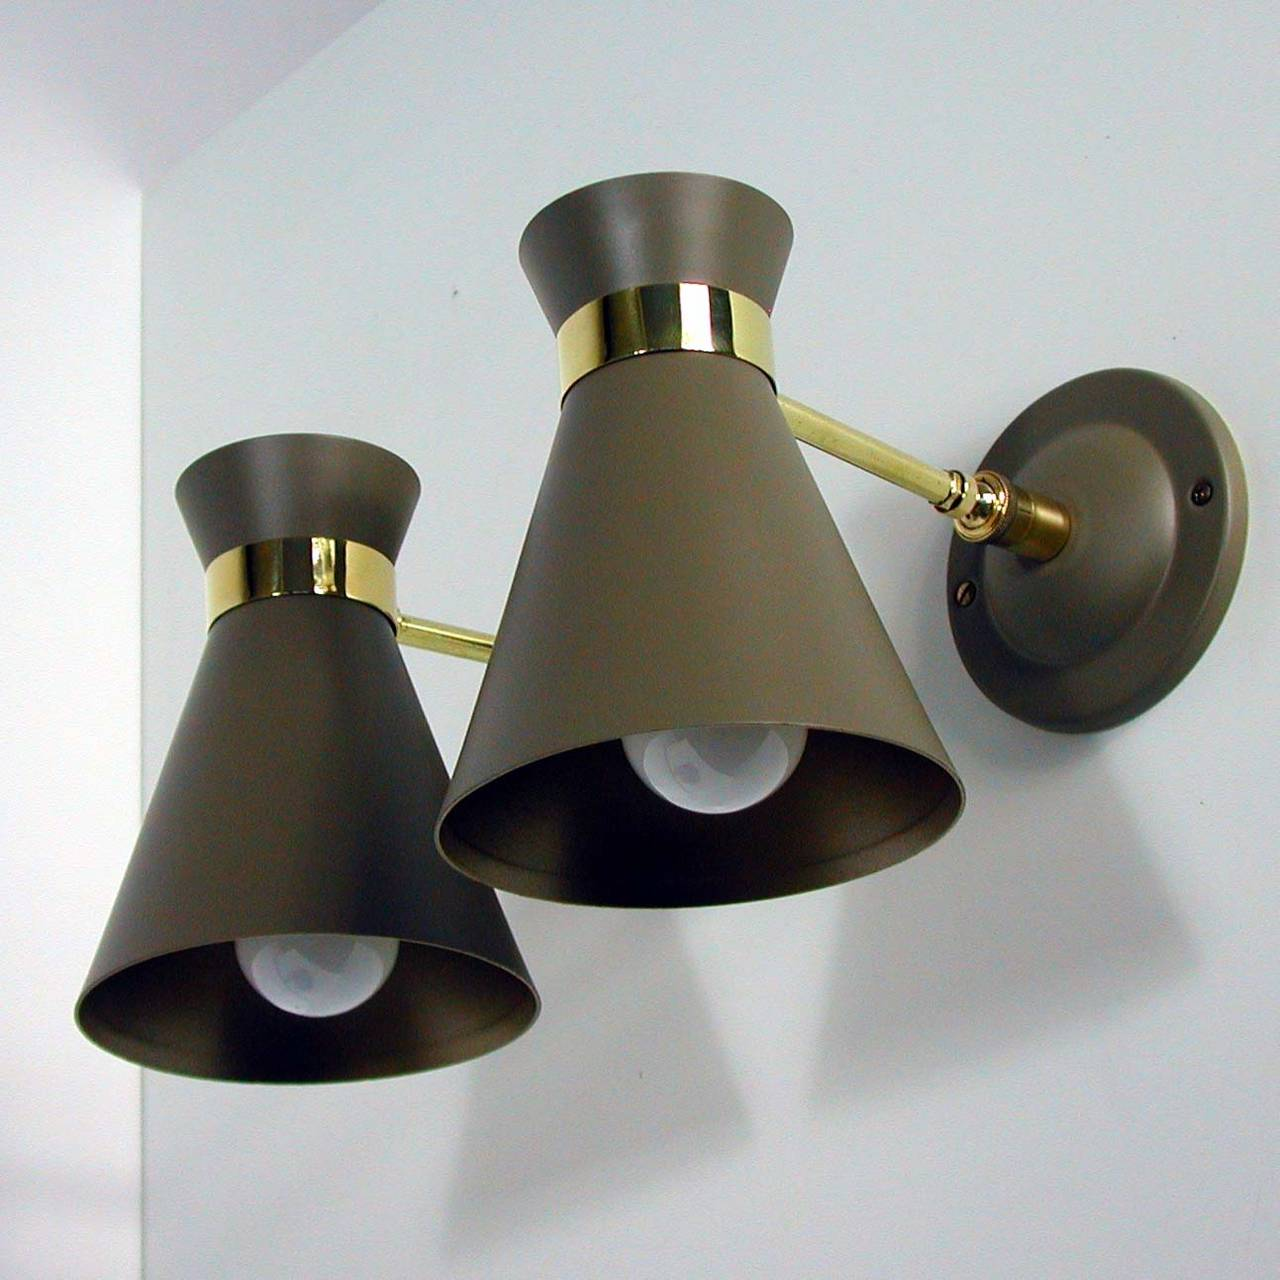 Wall Sconces Mid Century : Pair of Mid Century French Sconce Wall Lamps, Guariche Lunel Era at 1stdibs